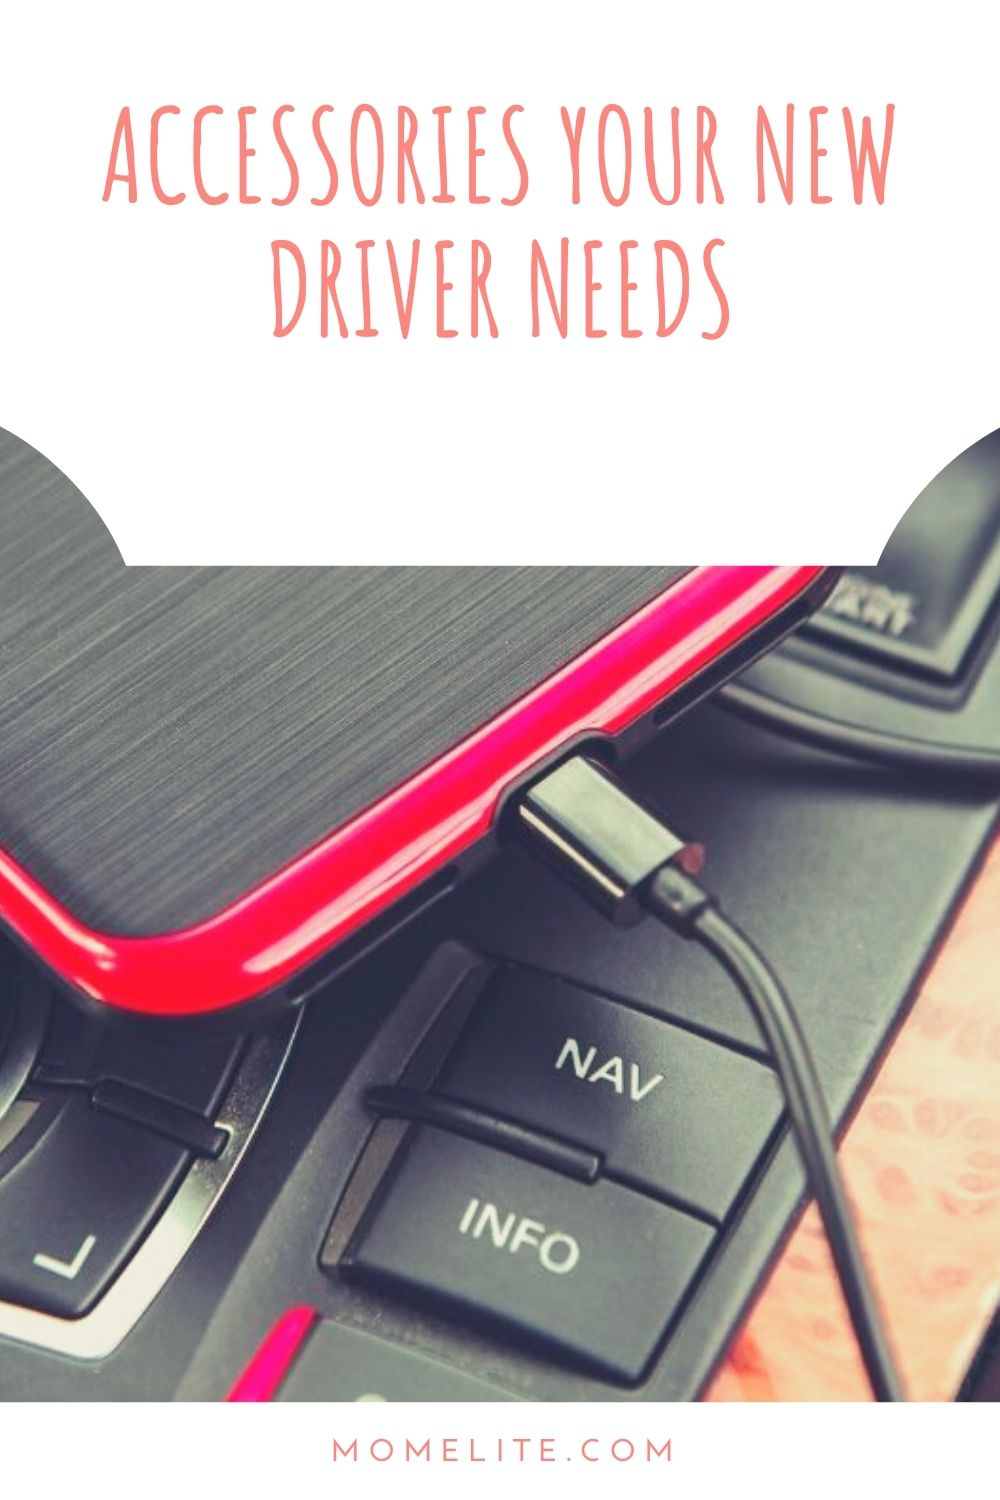 ACCESSORIES YOUR NEW DRIVER NEEDS